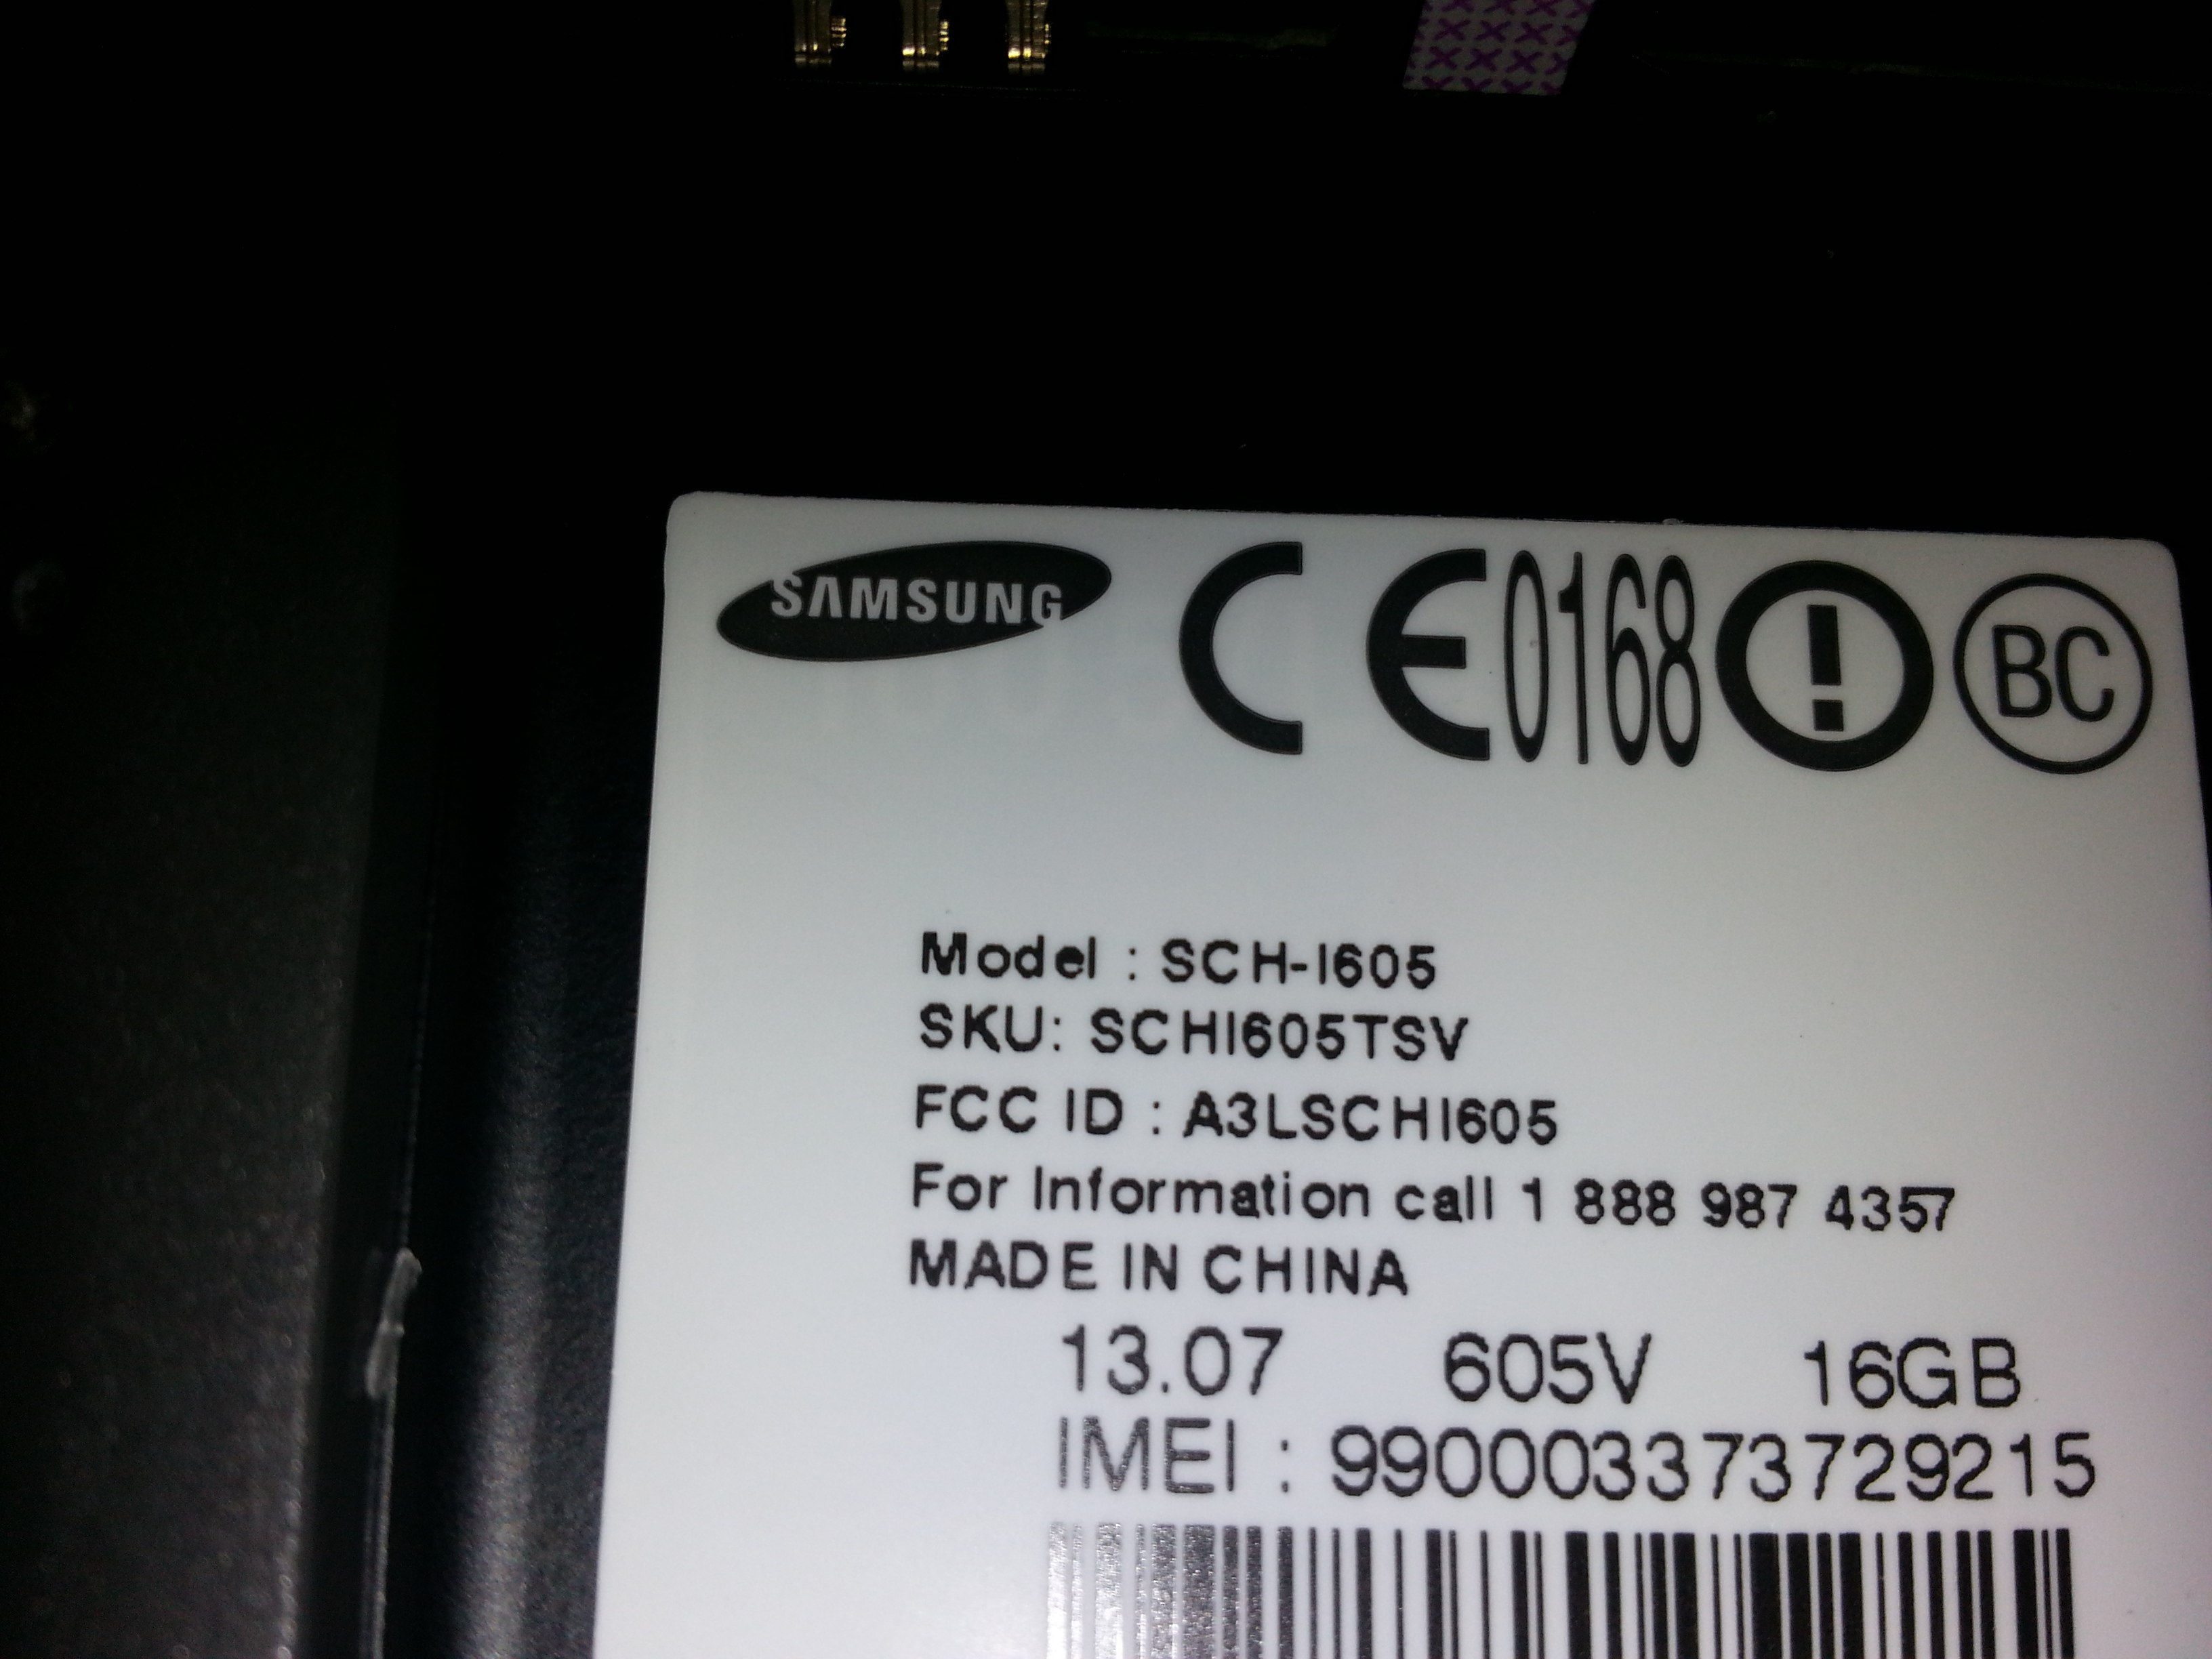 samsung note 2 model number on back of phone